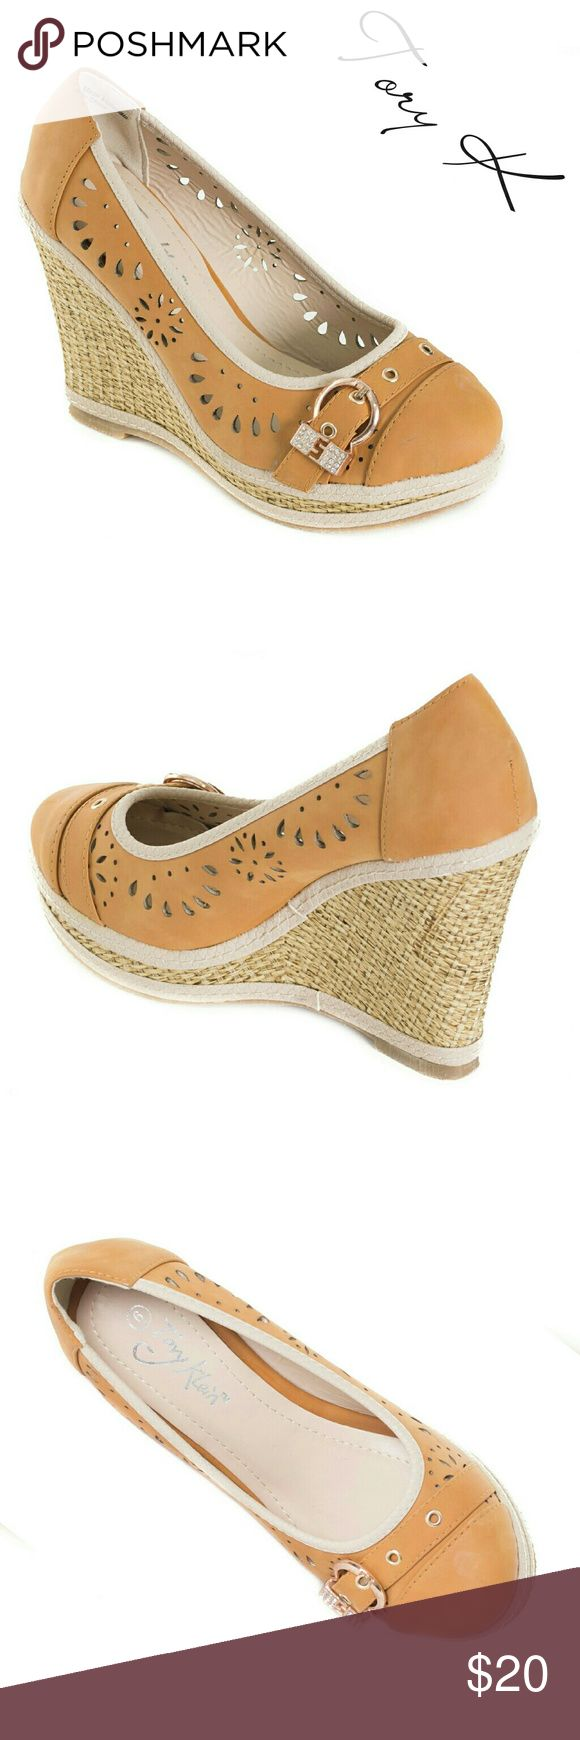 """Women Buckle Wedge Espadrilles, HW-1675, Camel Brand new Tory K perforated woman camel colored wedge espadrille sandals with a shiny belt-like buckle. 4"""" woven platform, these run a bit small. PU leather. A true statement in ladies shoes fashion! Size 9 measures 9.5 inches on the inside of the sole, all sizes are half an inch apart in length. Tory K  Shoes Wedges"""